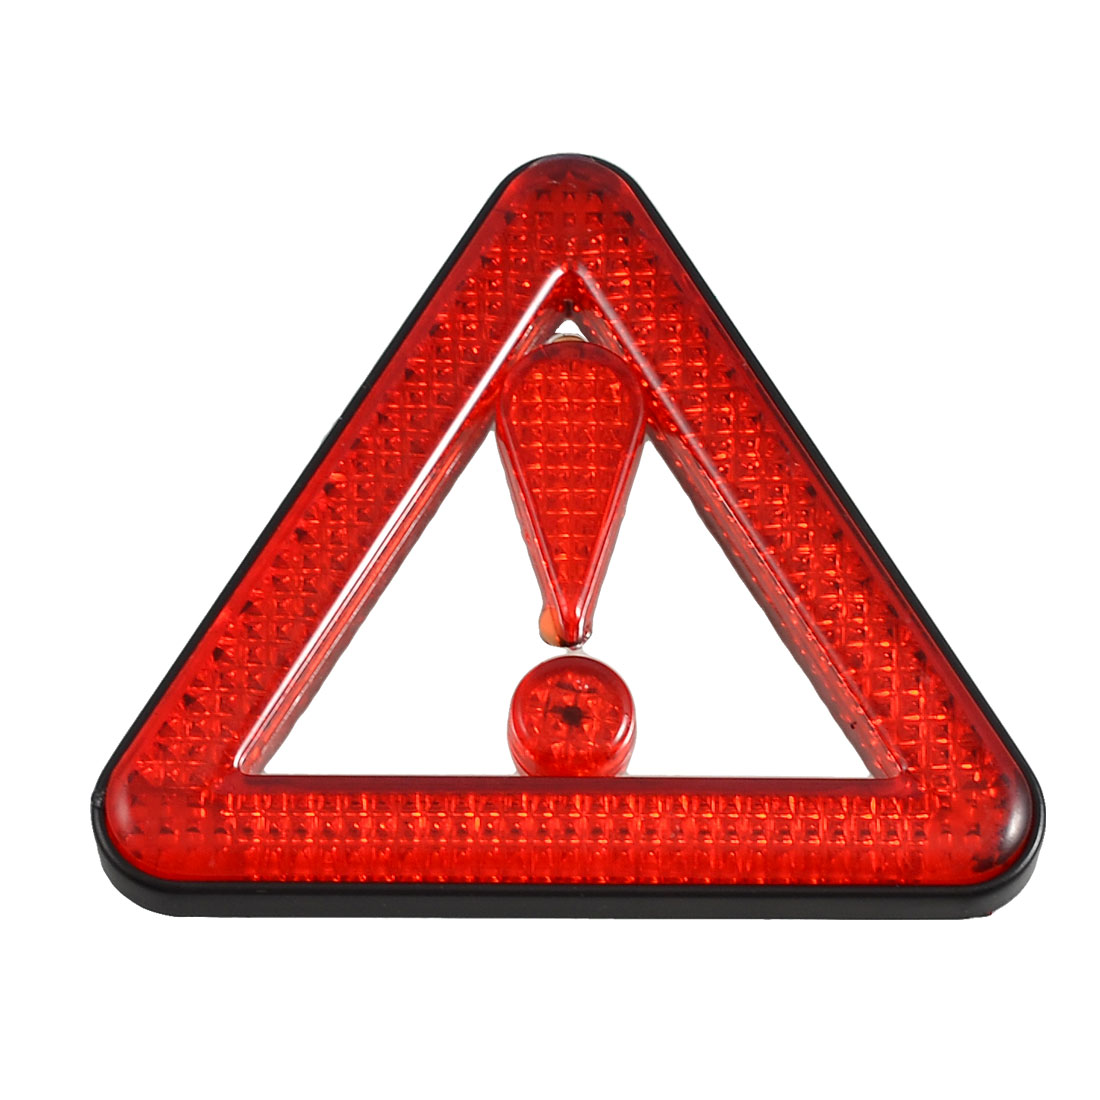 Car Exclamation Mark Reflective Triangle Sticker Red Black